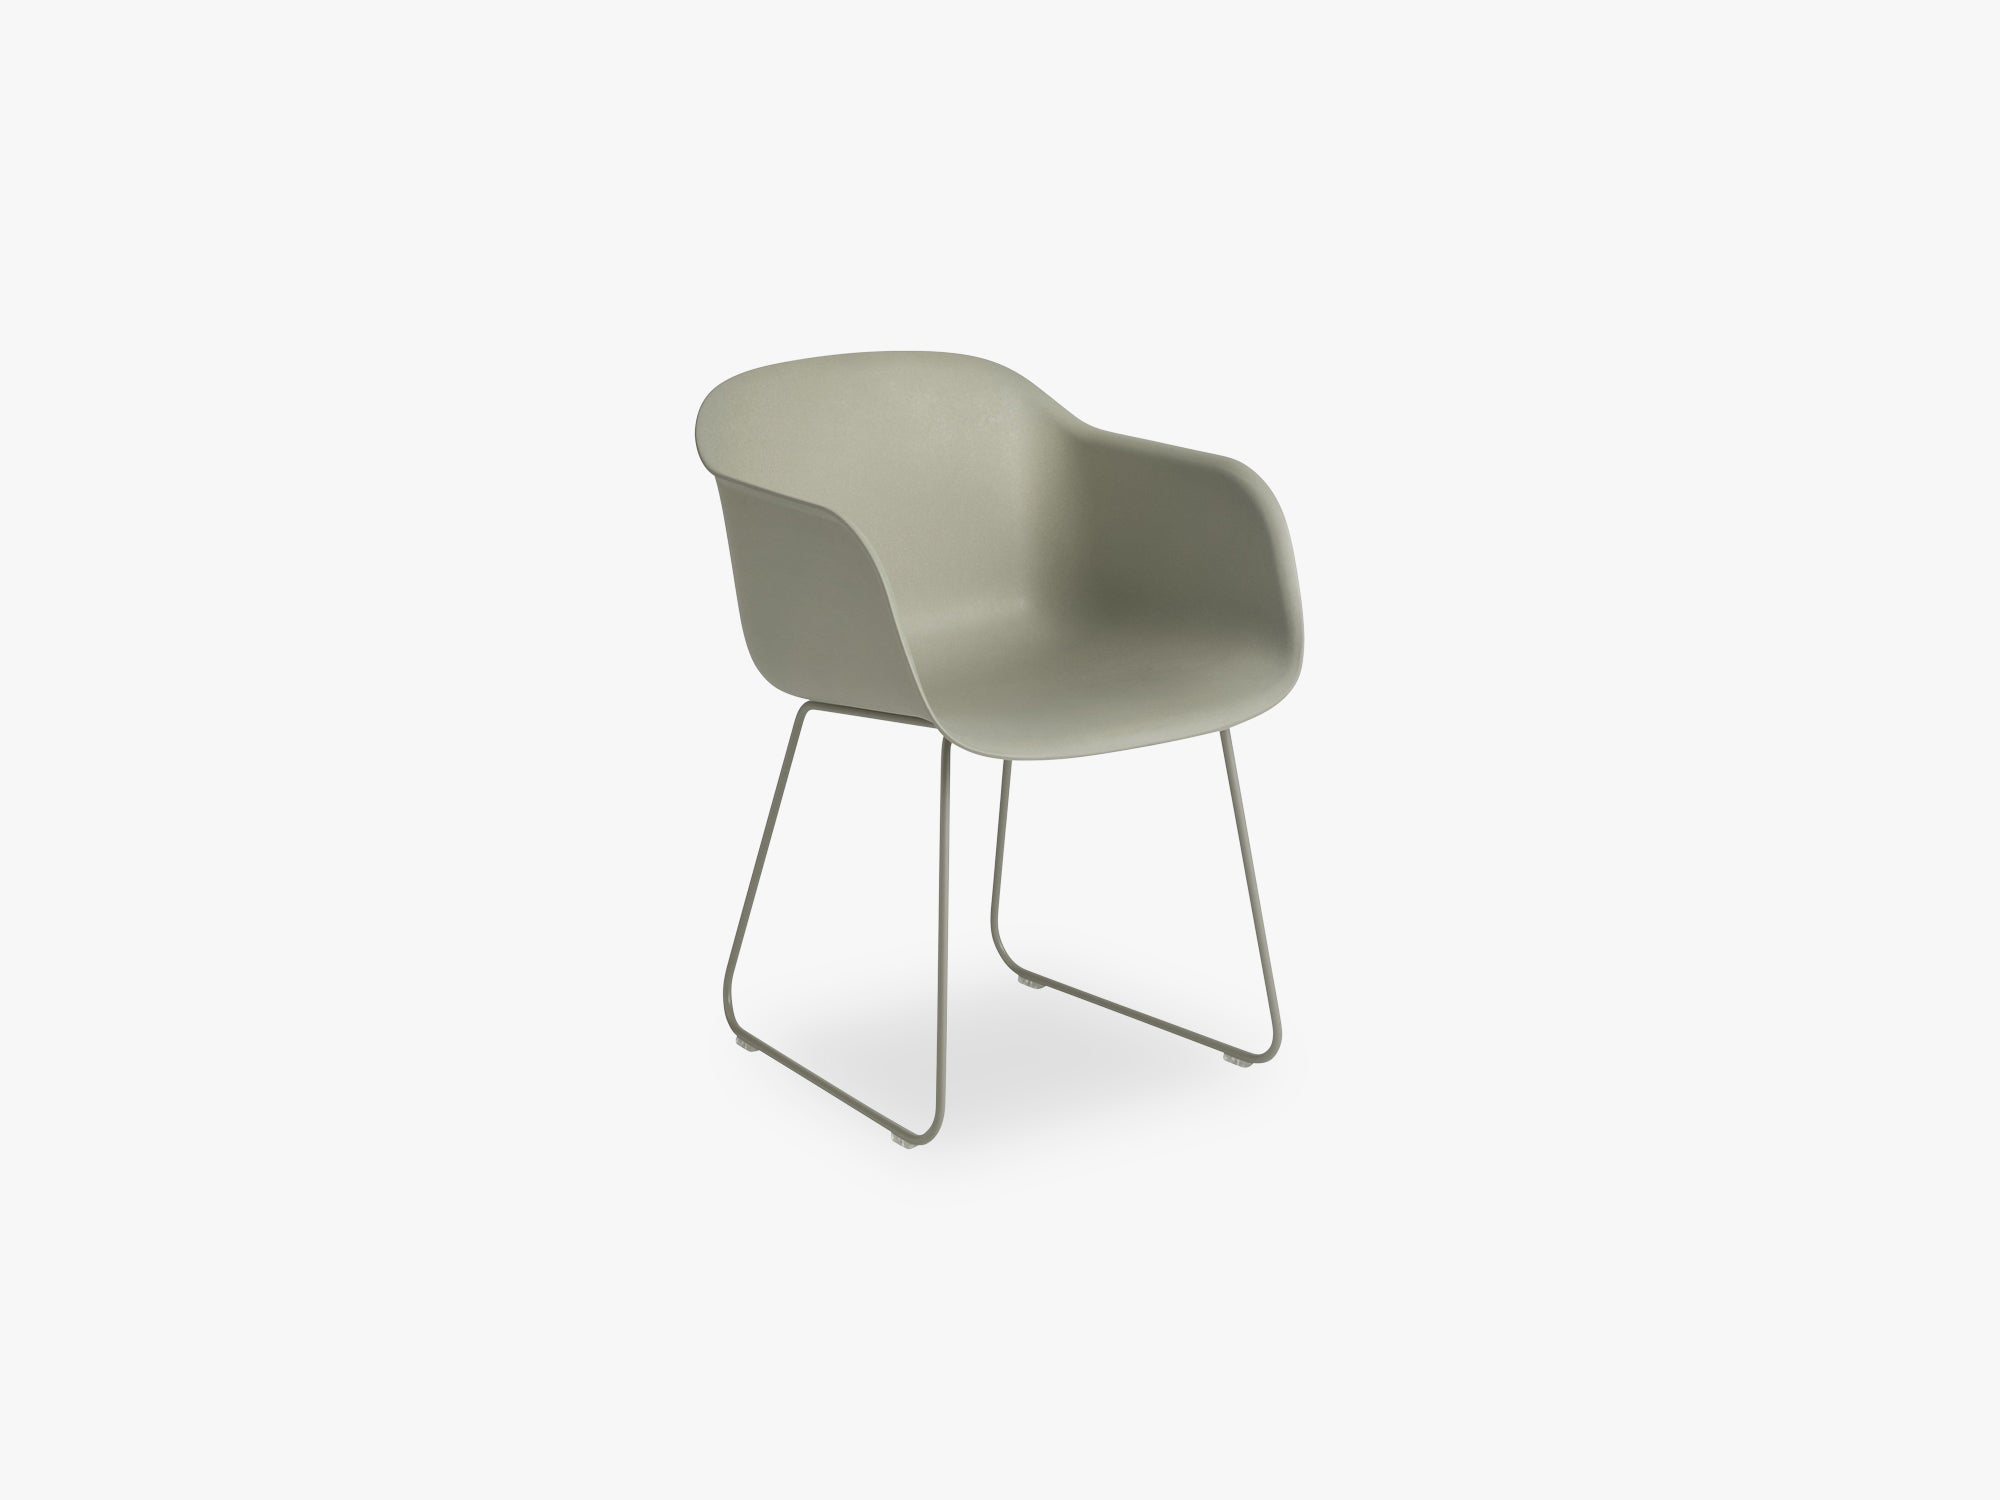 Fiber Armchair - Sled Base - Normal Shell, Dusty Green/Dusty Green fra Muuto